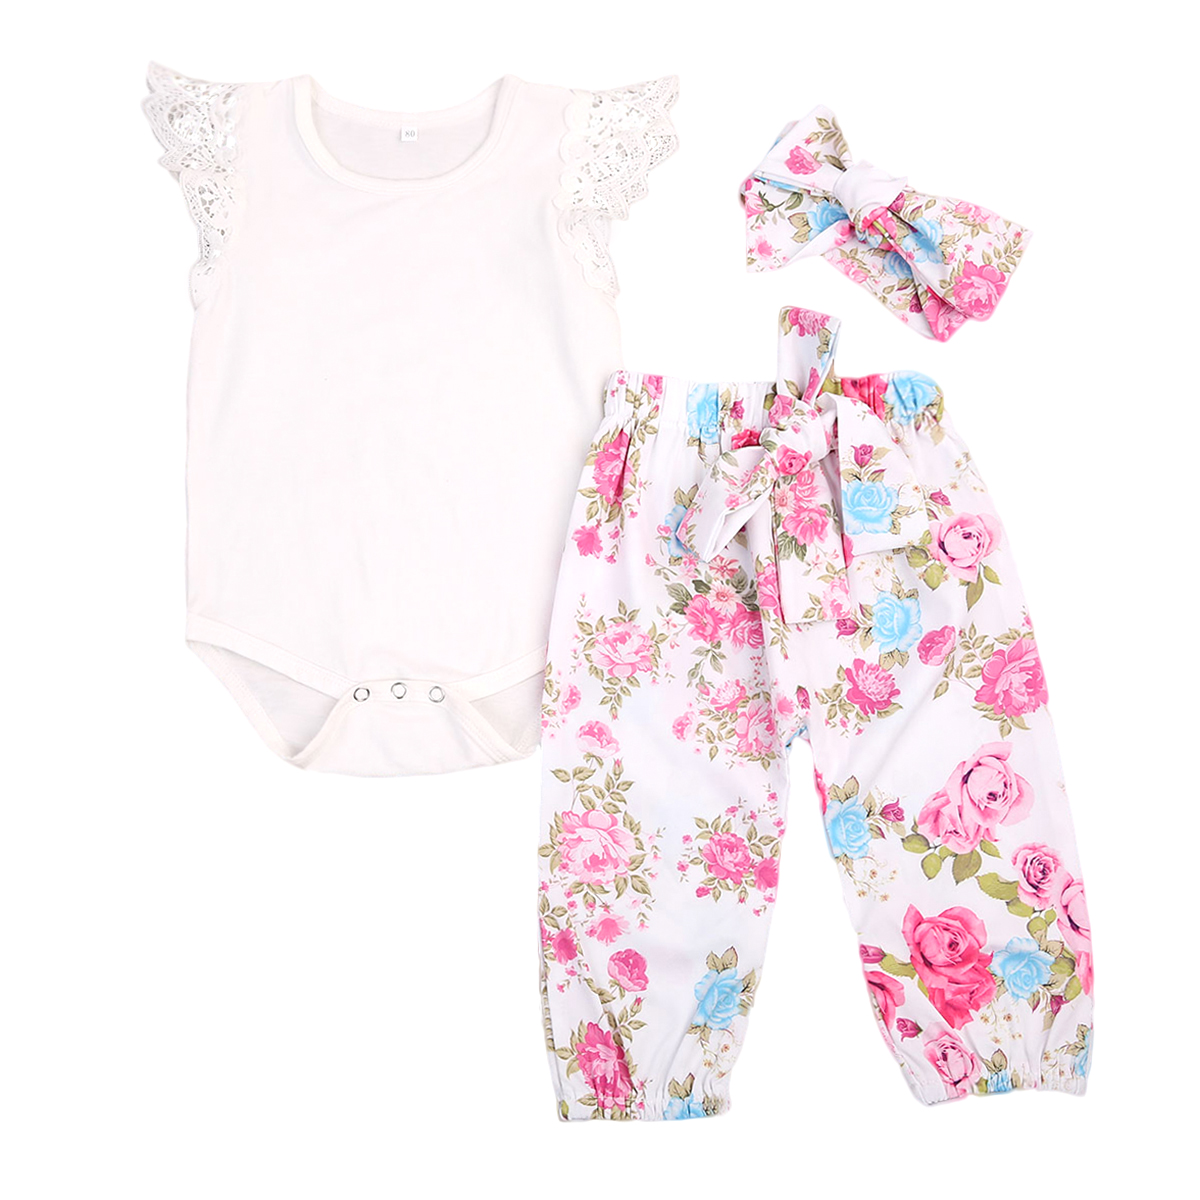 US Stock Floral Newborn Baby Girls Lace Romper Pants Headband Outfit Set Clothes Infant Toddler Girl Brief Clothing Set Playsuit 2017 floral baby romper newborn baby girl clothes ruffles sleeve bodysuit headband 2pcs outfit bebek giyim sunsuit 0 24m